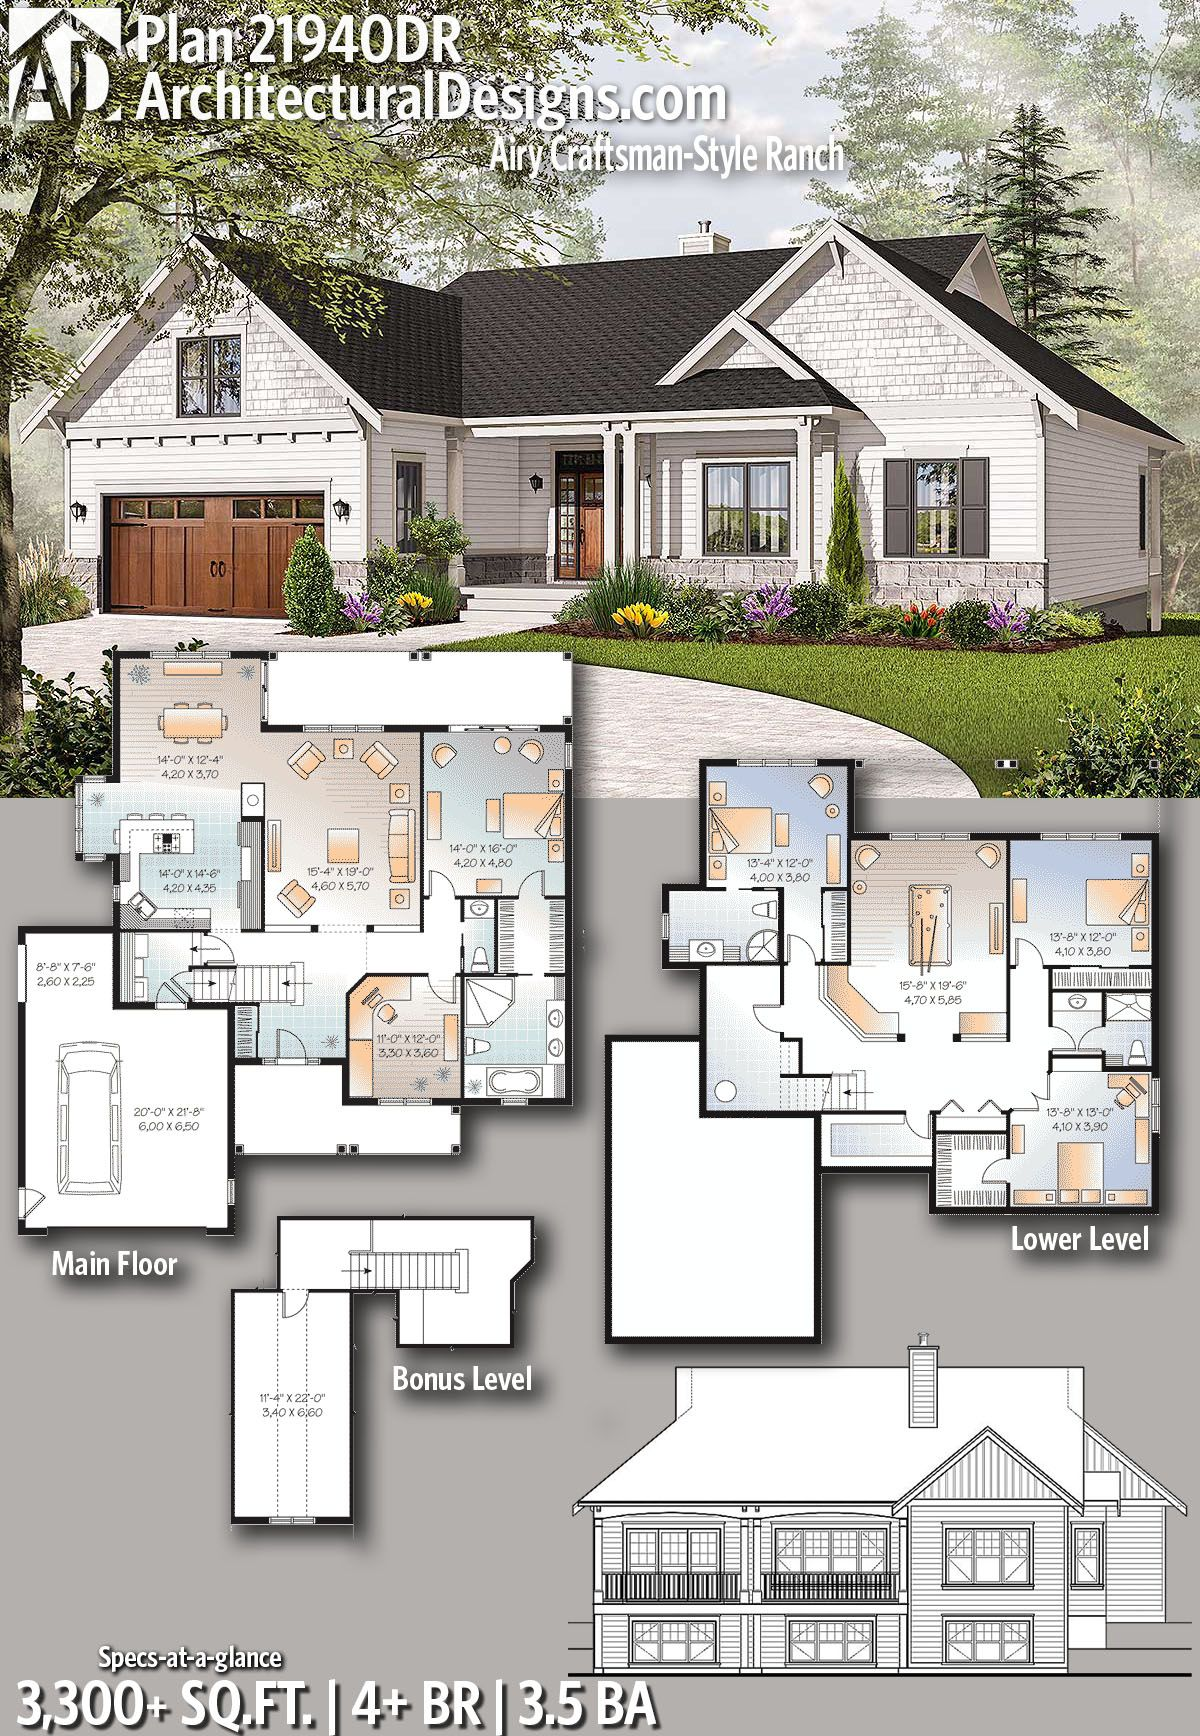 Architectural designs house plan dr gives you beds baths and over sq ft of heated living space plus  bonus room the garage also airy craftsman style ranch plans good rh pinterest